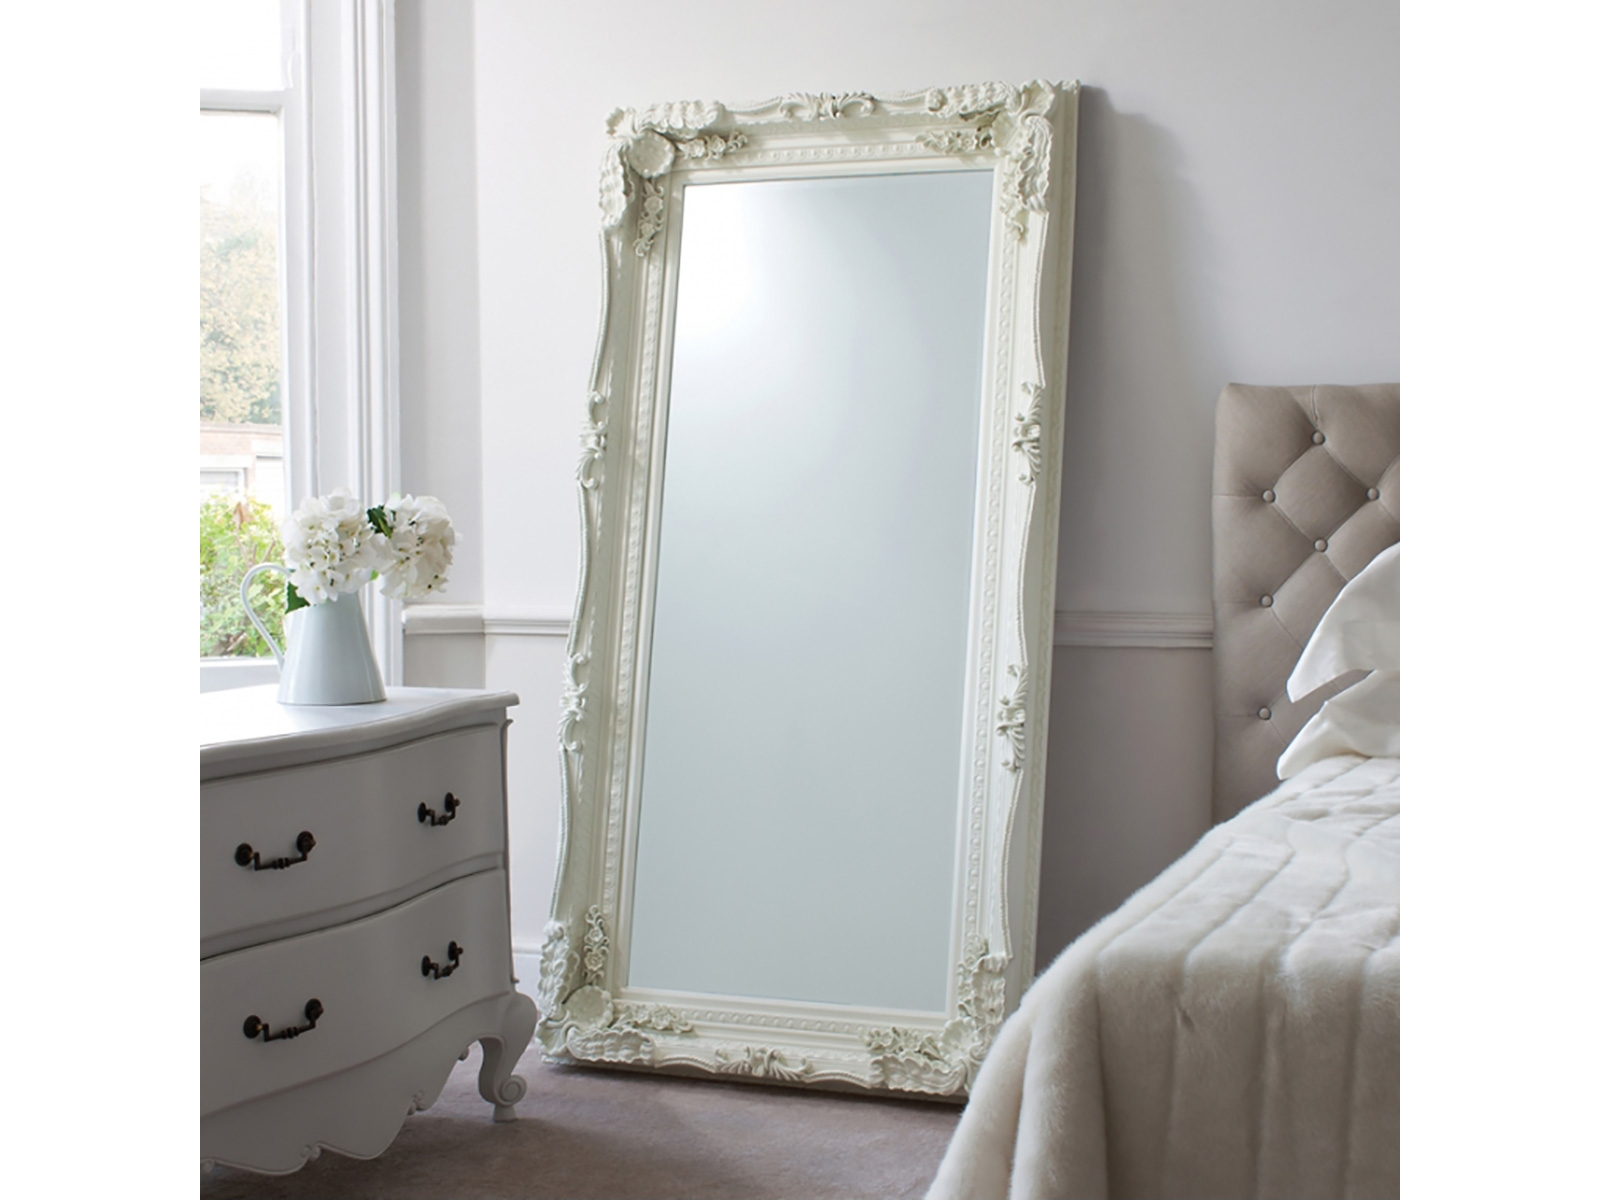 Mirrors Carved Louis Leaner Mirror Cream 69×35 Mirrors Cousins Regarding Large Cream Mirror (View 8 of 15)